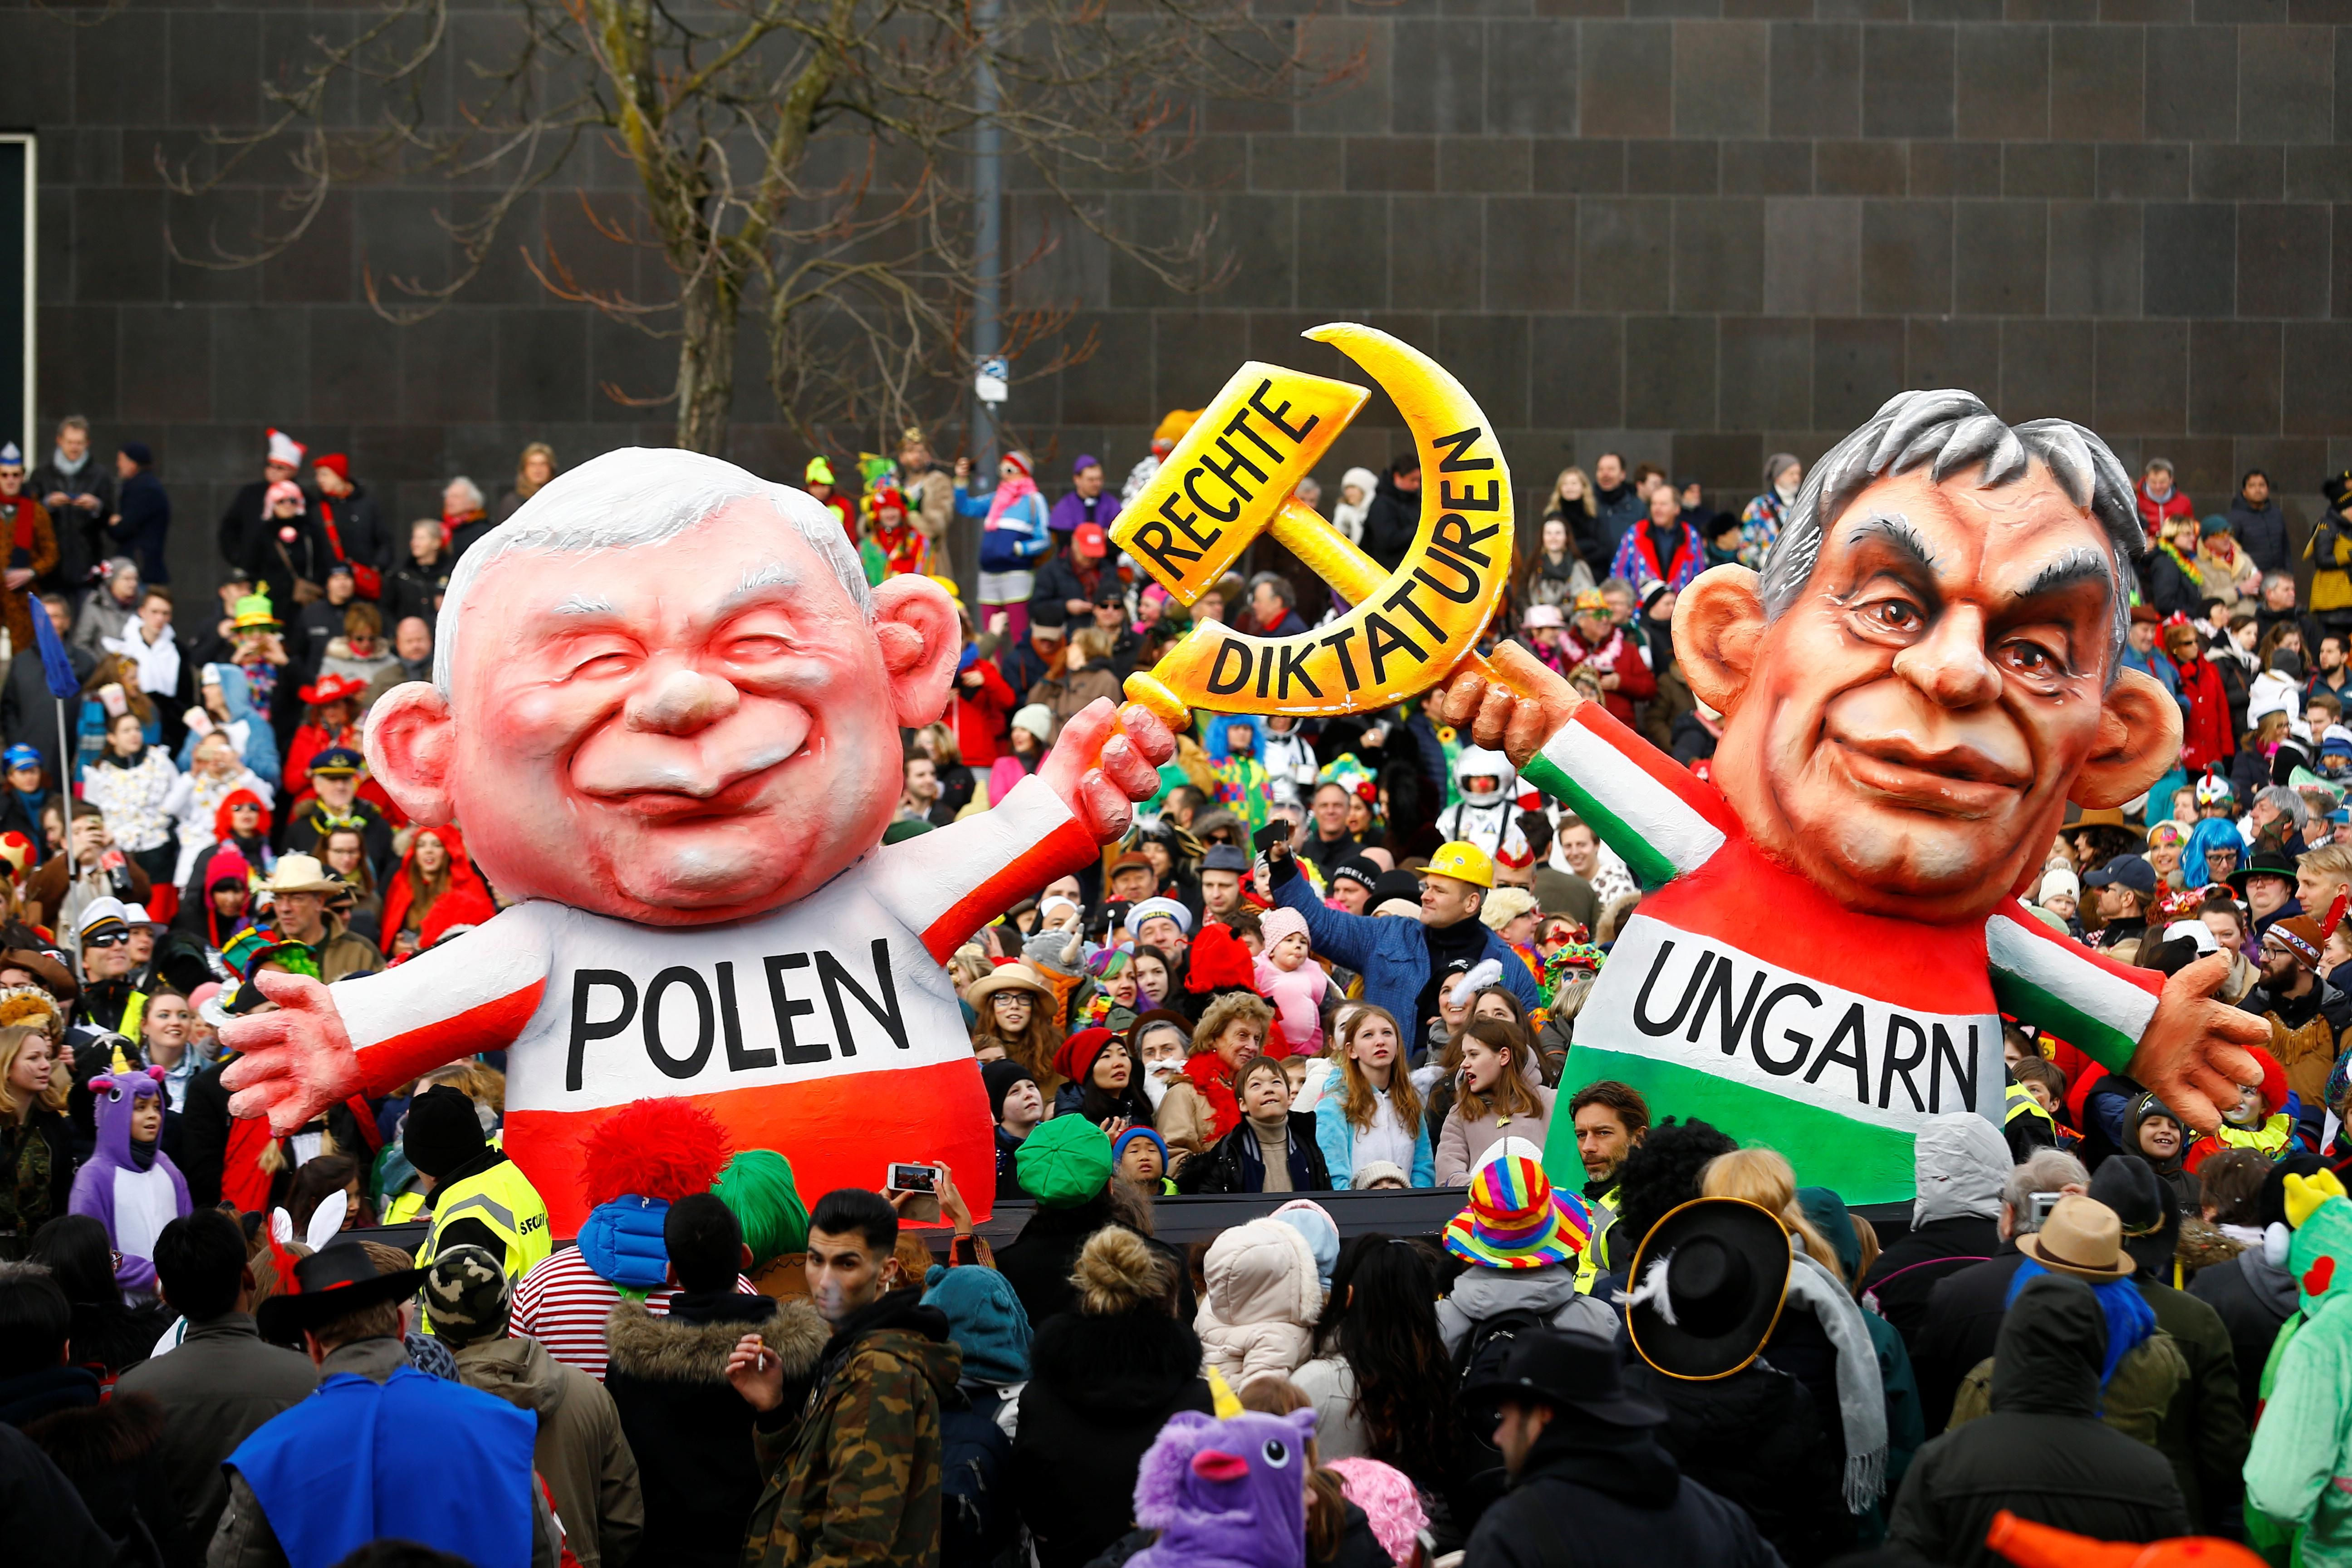 The EU takes a swing at Poland and Hungary